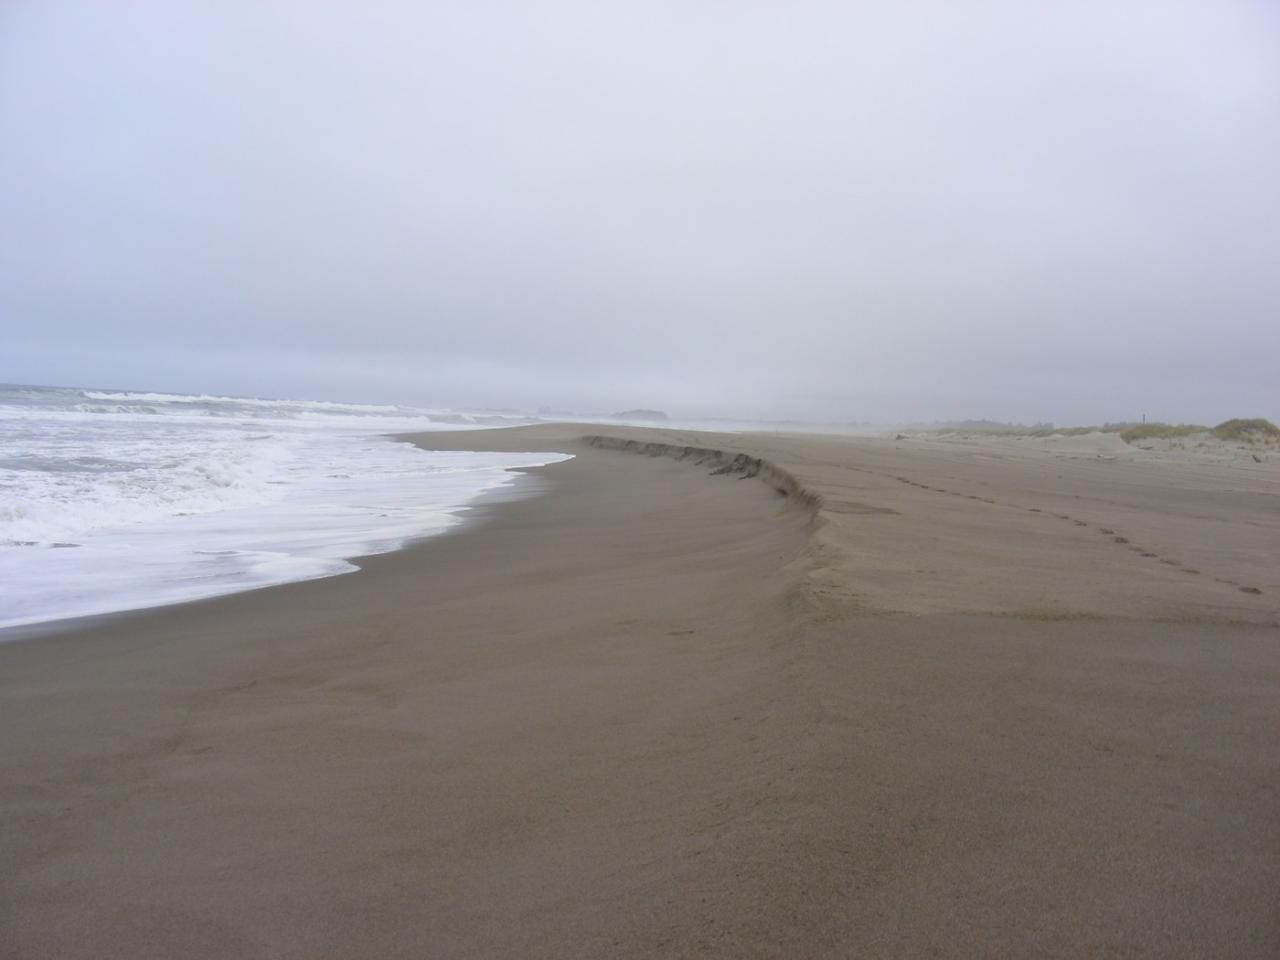 This shows how the ocean is cutting into the sand with a strong riptide embayment on Mile 97.